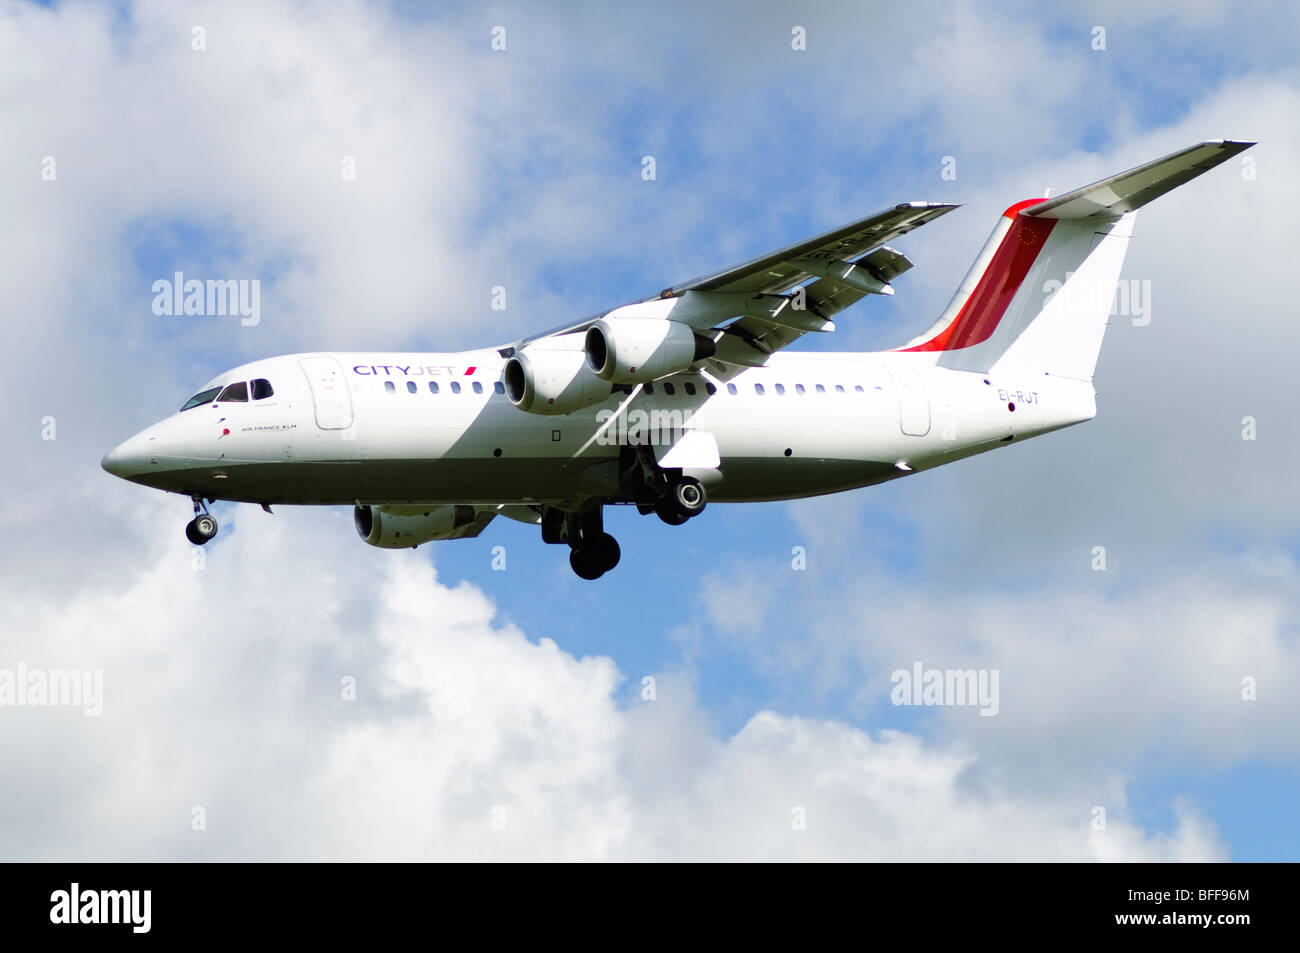 Avro RJ85 operated by Cityjet on approach for landing at Birmingham Airport - Stock Image